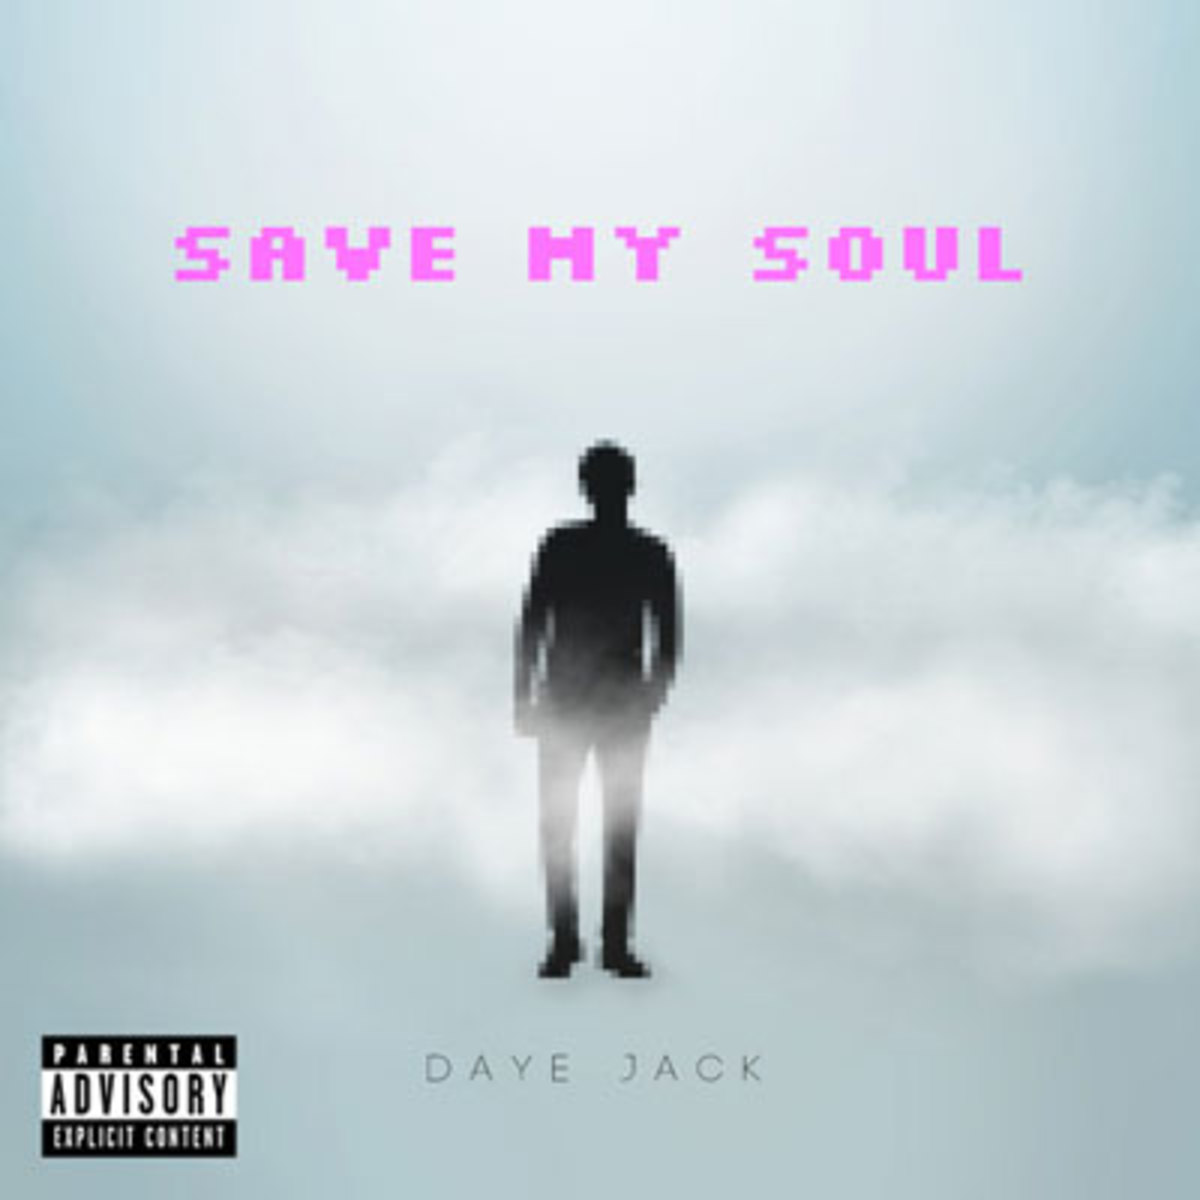 daye-jack-save-my-soul.jpg